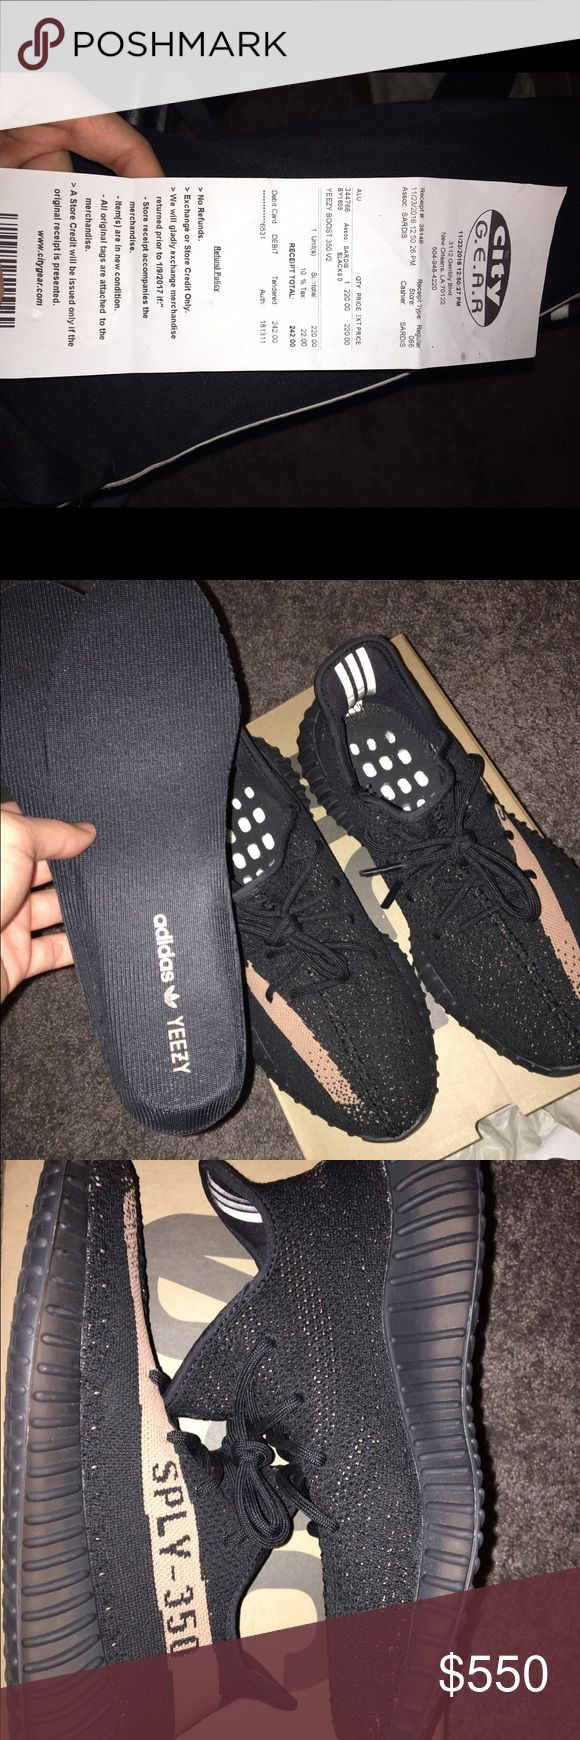 Yeezy v2 copper Condition 9/10 let me know if you need more pics, etc. 100% authentic just don't fit me so no point of keeping them. I can lower the price if we go through PayPal! Adidas Shoes Sneakers